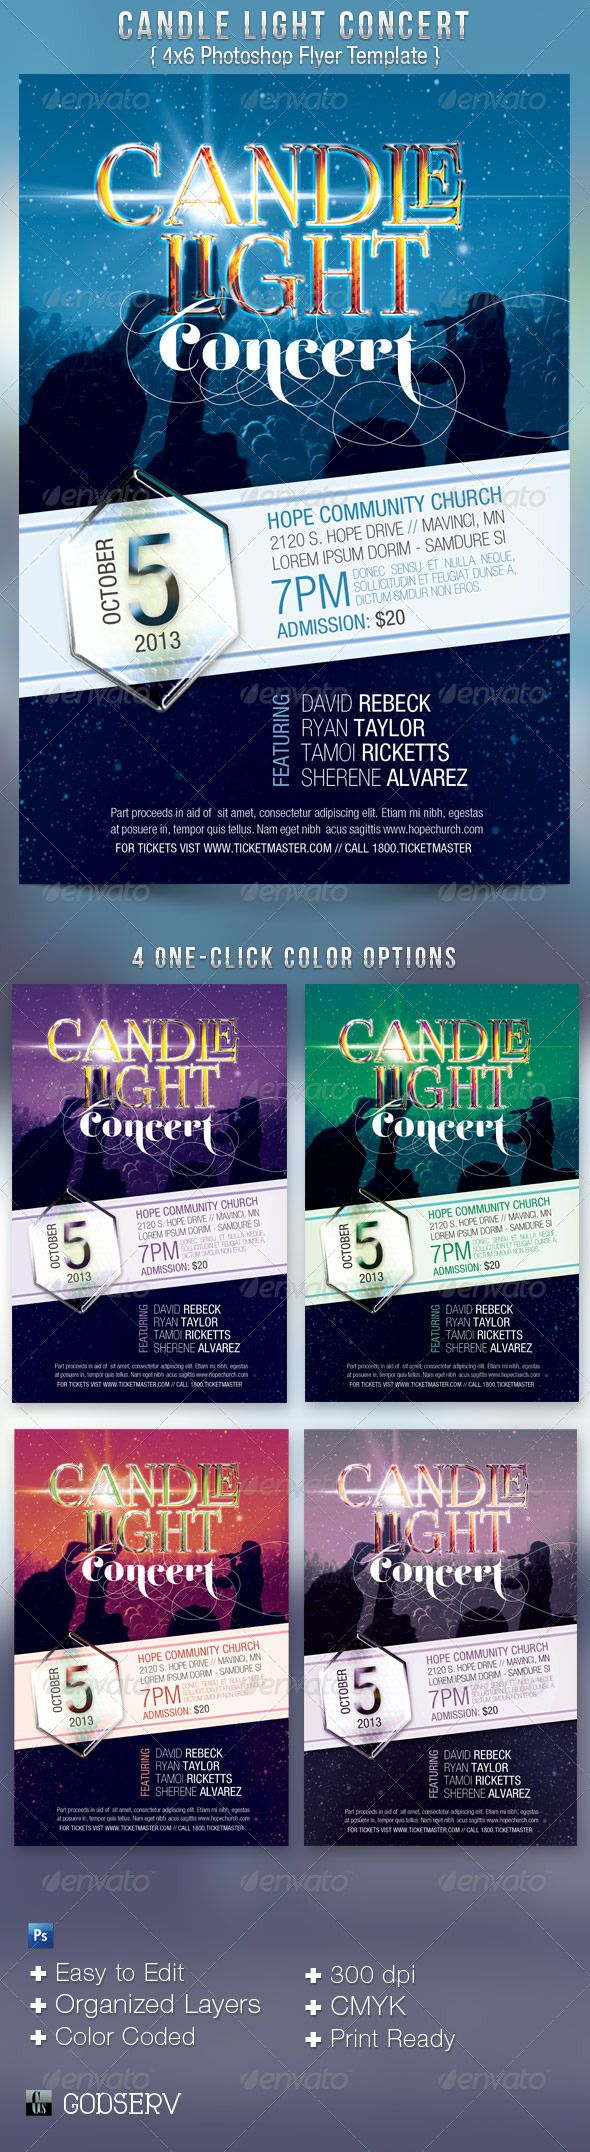 christmas church flyer template bundle vol 4 flyer template christmas church flyer template bundle vol 4 flyer template flyers and church